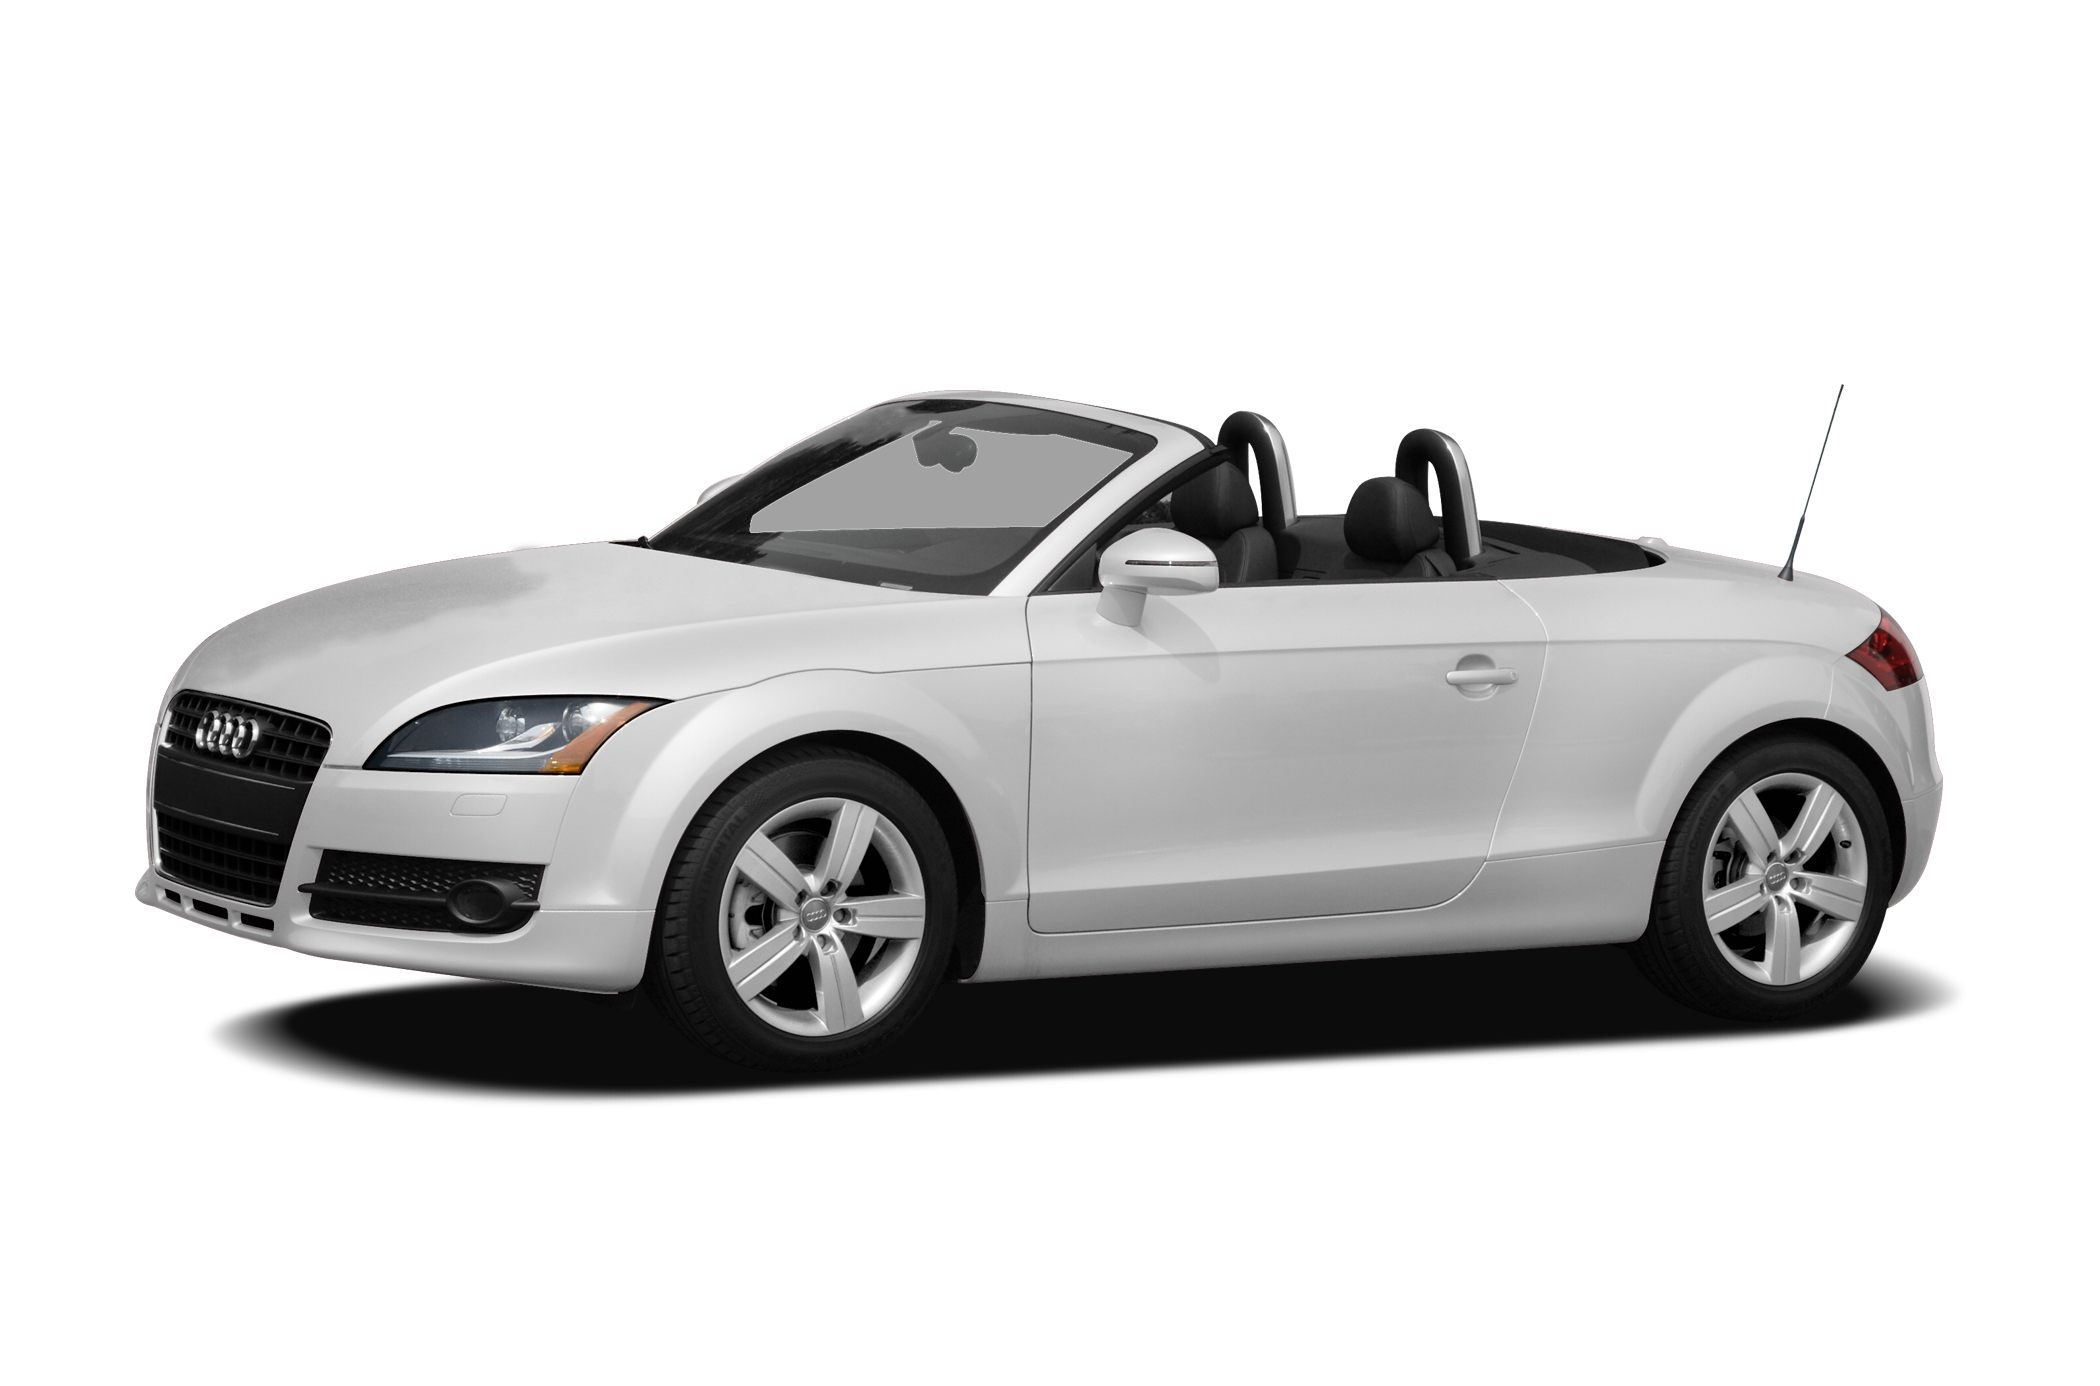 2008 audi tt 3.2 2dr all-wheel drive quattro roadster specs and prices